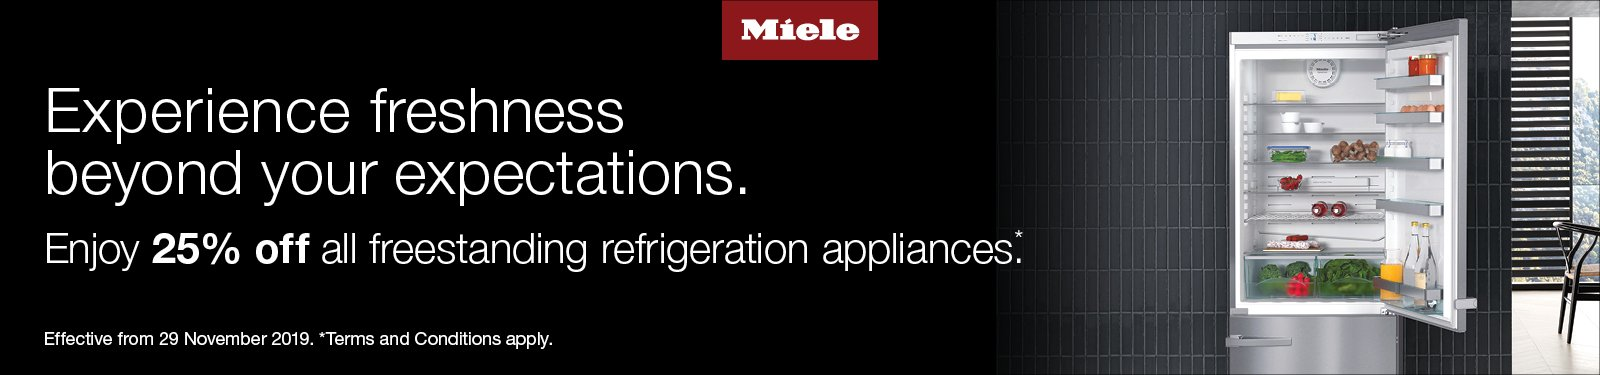 Miele 25% Off Freestanding Fridges